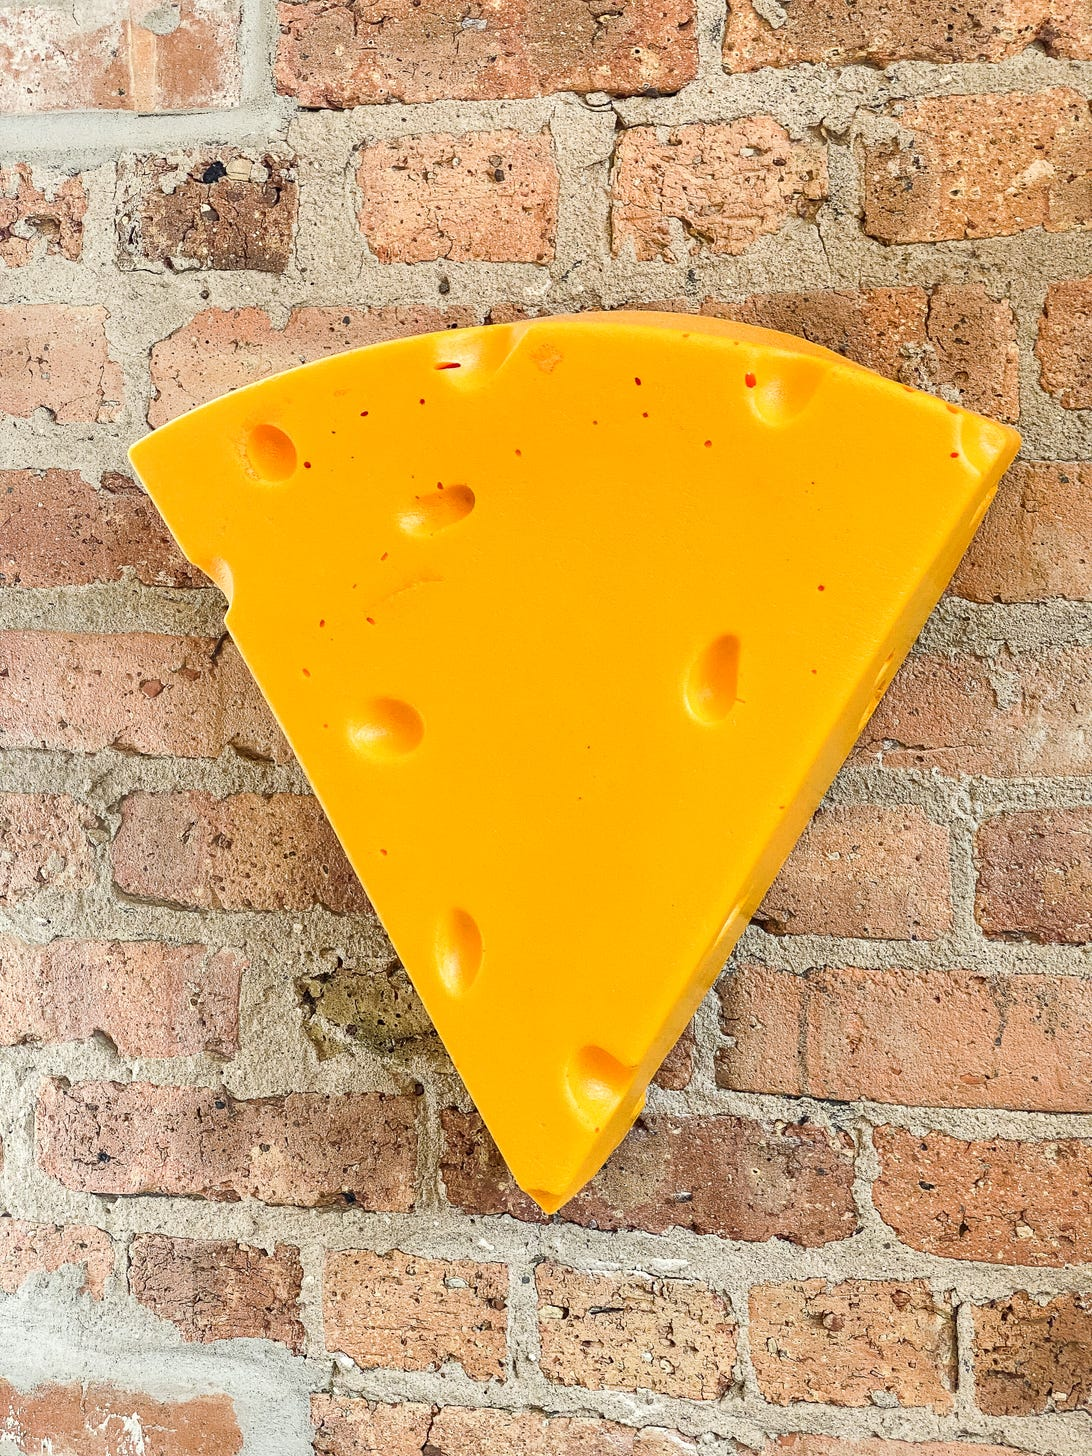 cheesehead-foamation-factory-made-in-america-2021-wisconsin-cnet-107